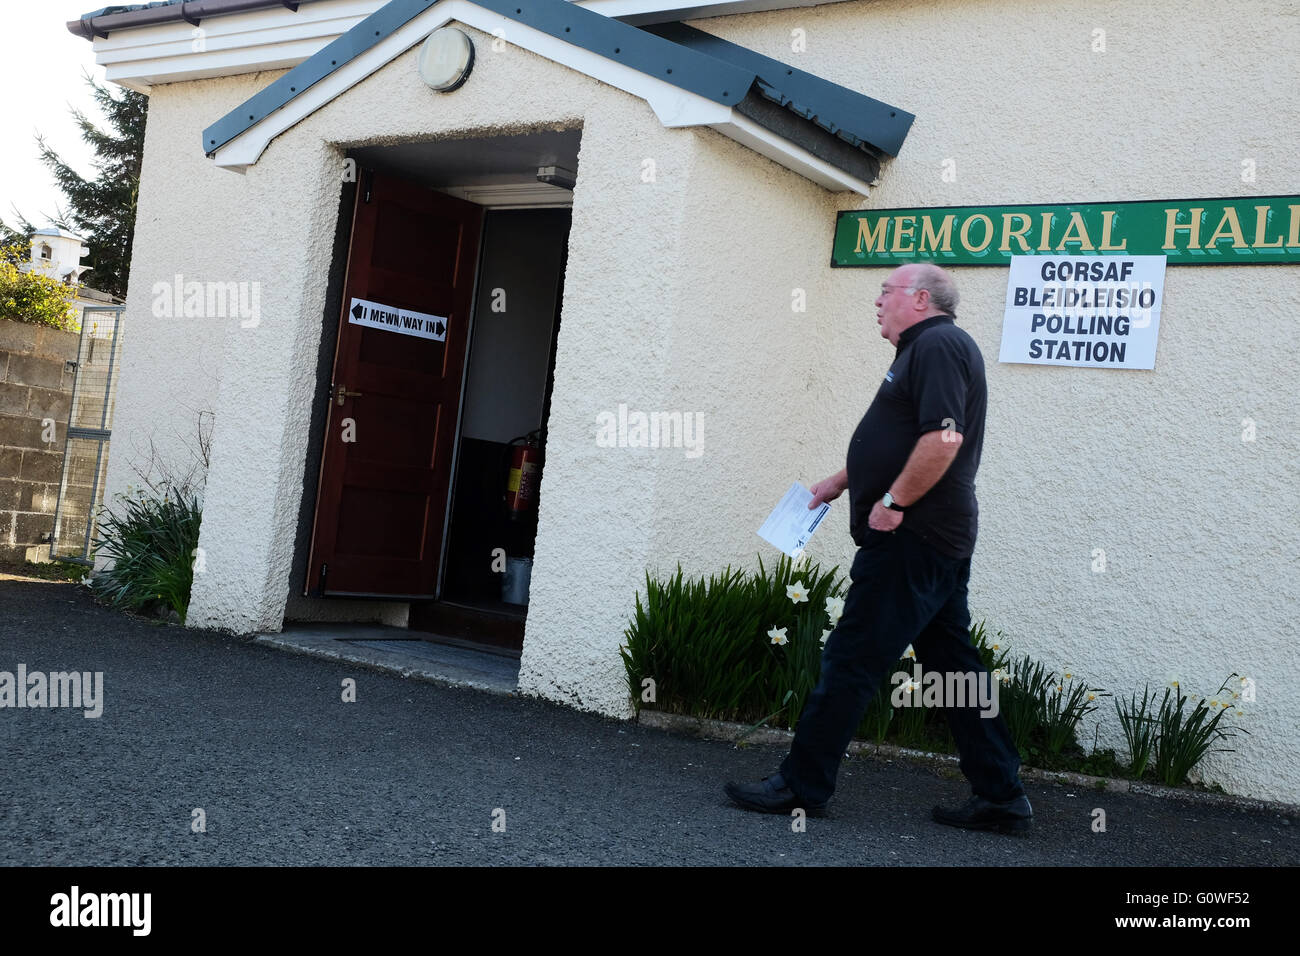 Presteigne, Powys, UK. 5th May 2016. An early morning voter arrives at the Polling Station in the village hall in - Stock Image